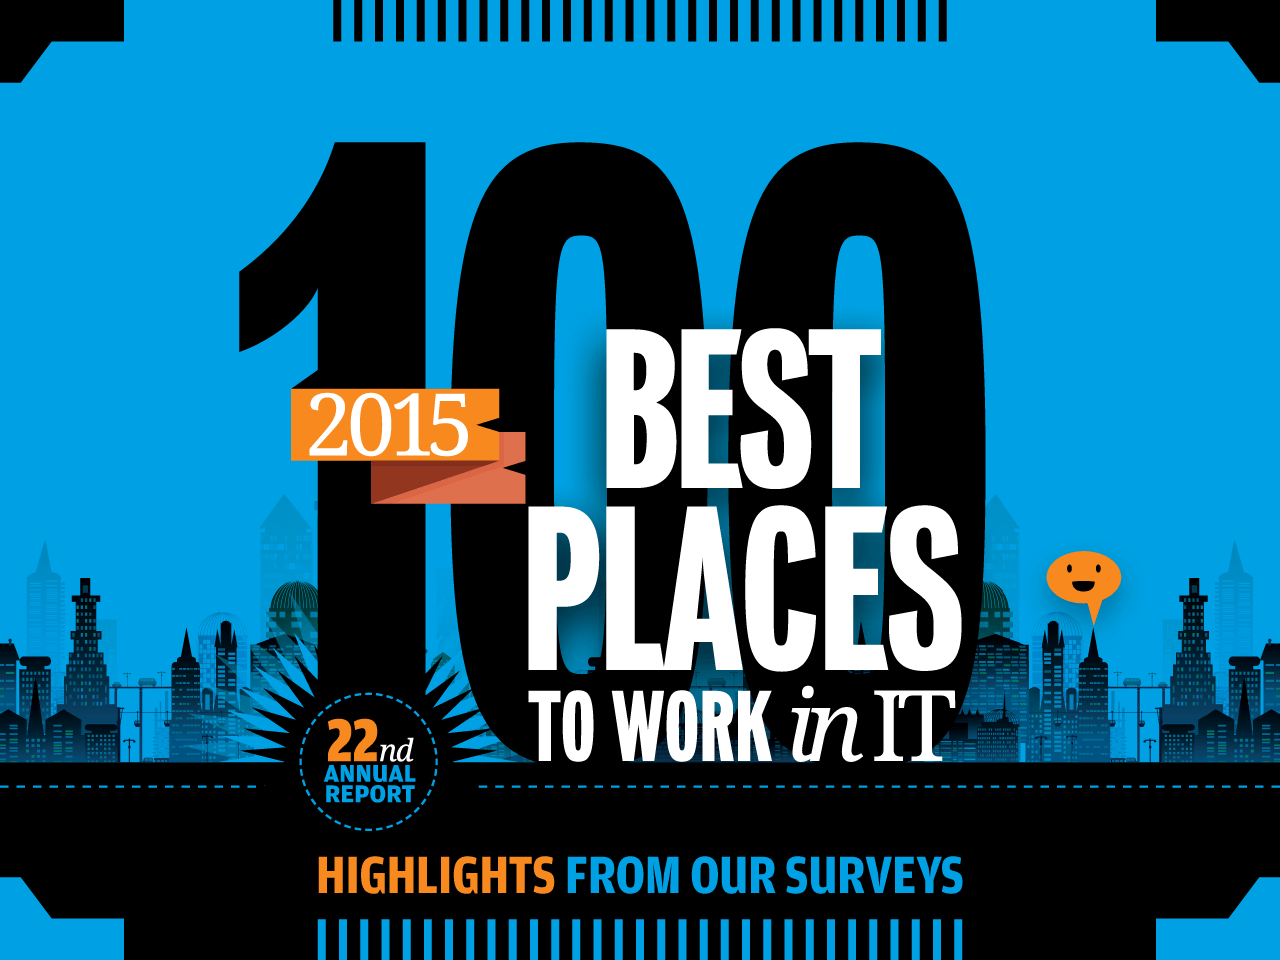 survey results best places to work in it 2015 computerworld